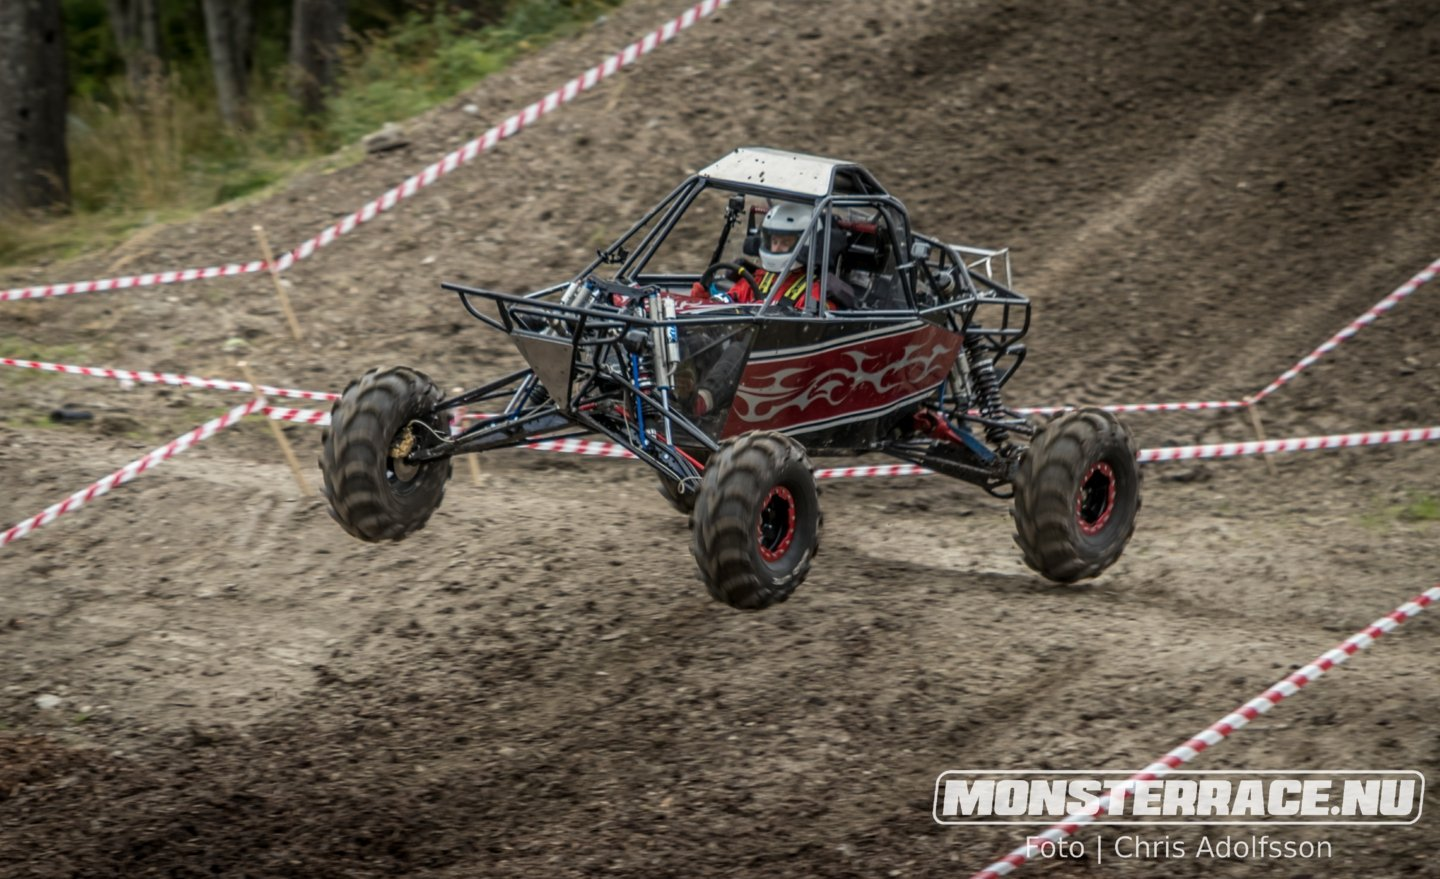 Monsterrace Ed dag 1 (201)